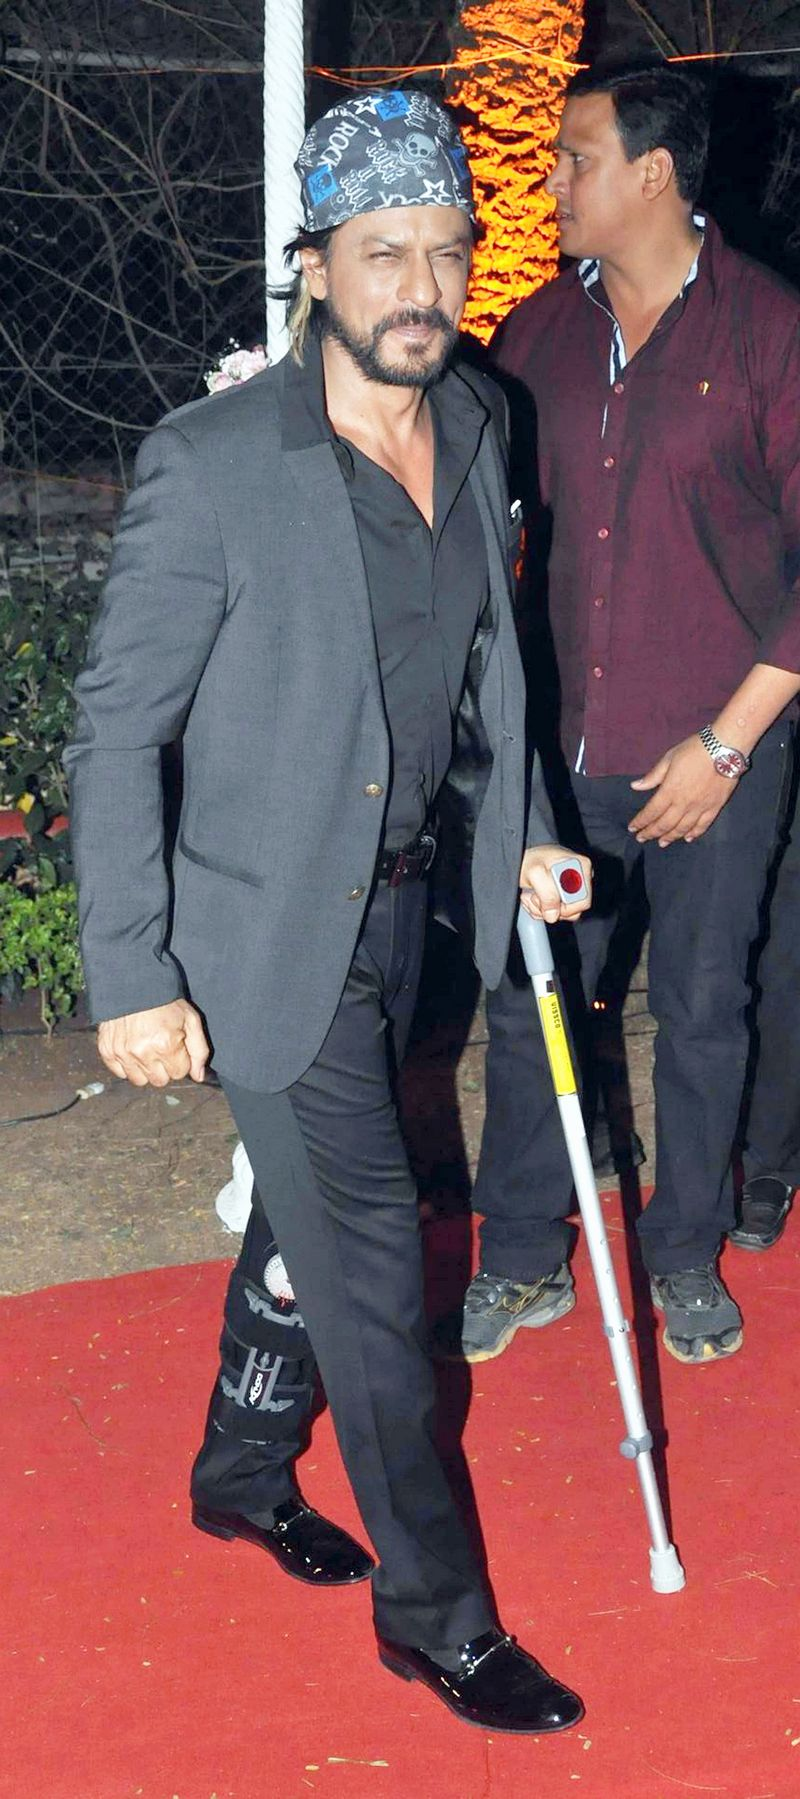 Bollywood stars are no longer choosing to hide their battle scars from the world and are instead choosing to step out and flaunt their injuries instead! Take Shah Rukh Khan, for example, who had been injured on the sets of 'Happy New Year' but still made it to Ahana Deol's wedding with a leg brace and a crutch. Photo: AFP